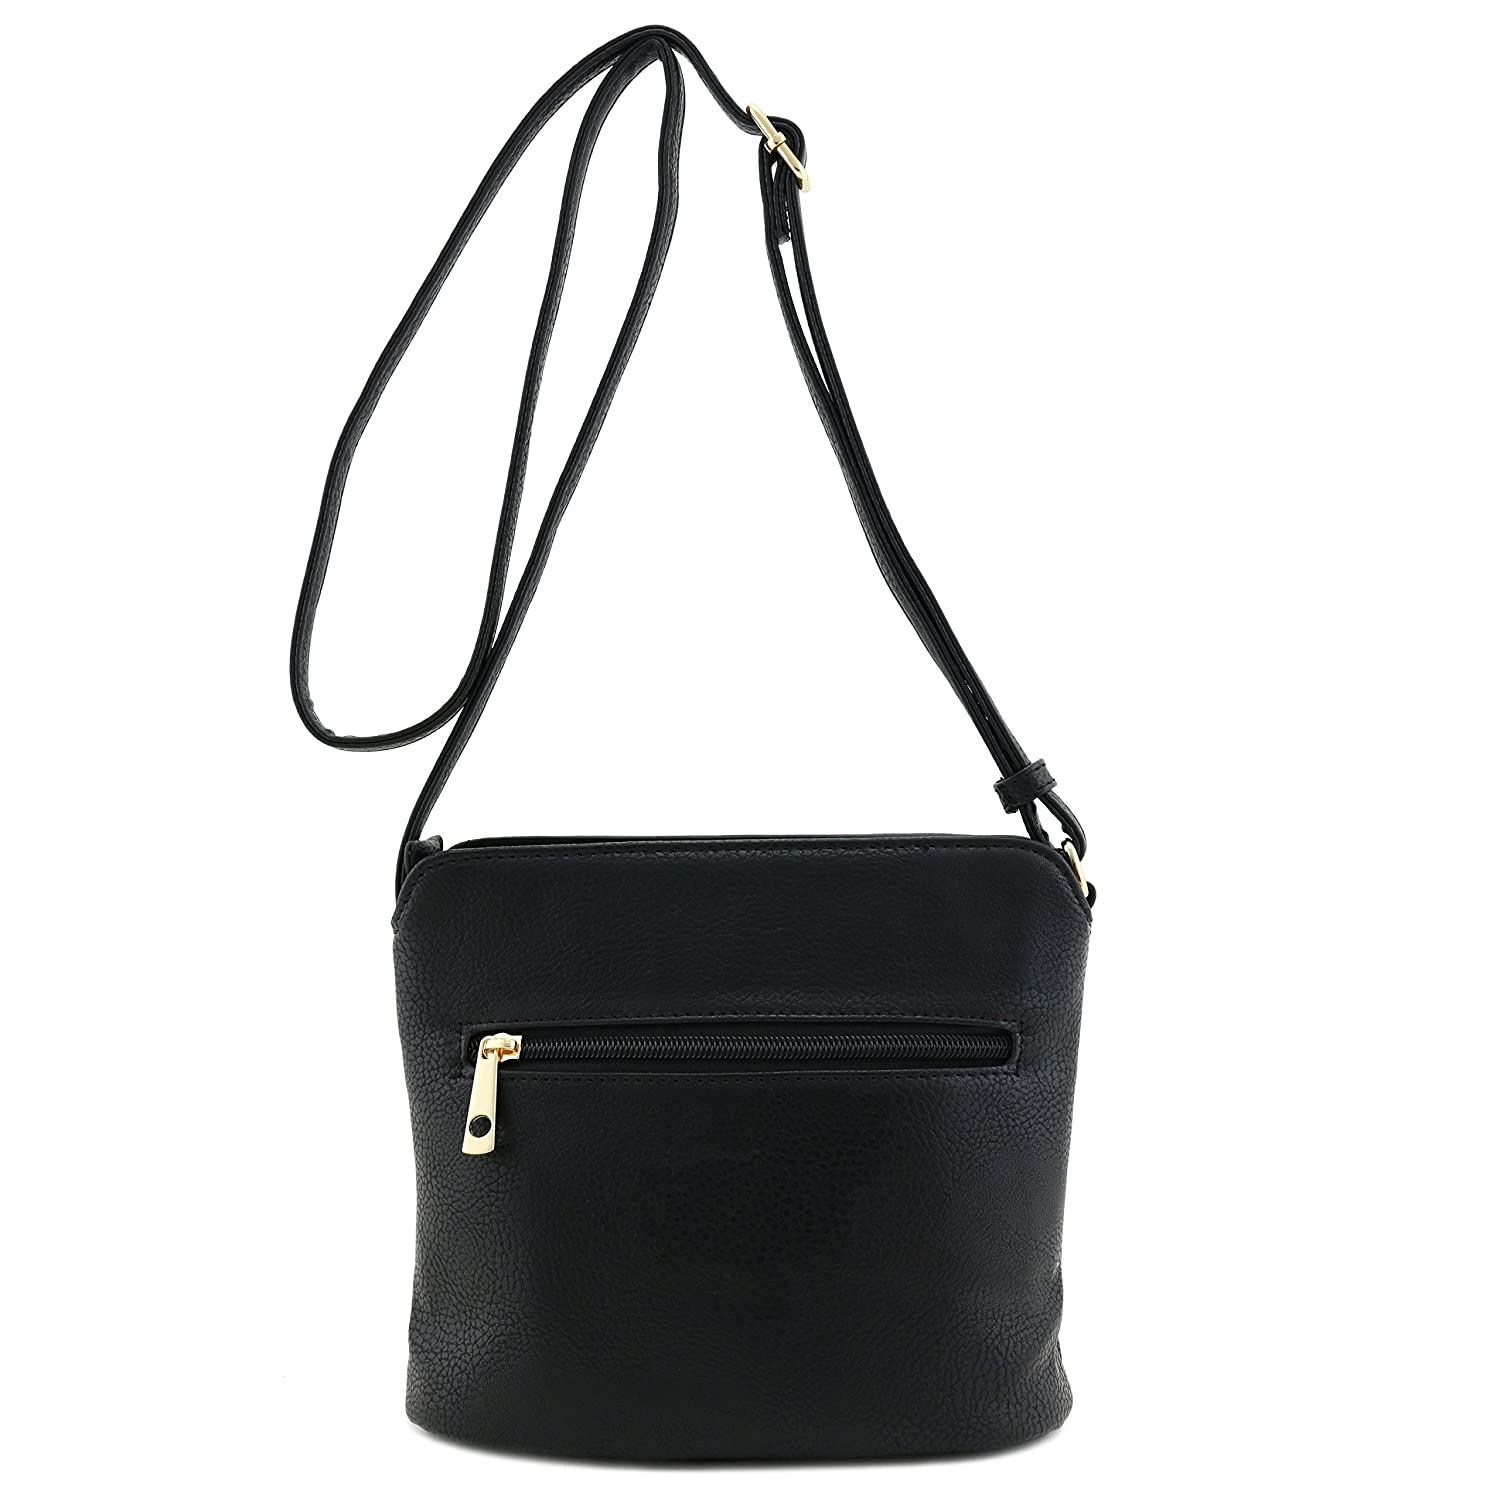 011be14c5760 Tassel Accent Small Crossbody Bag with Emblem Black  Handbags  Amazon.com